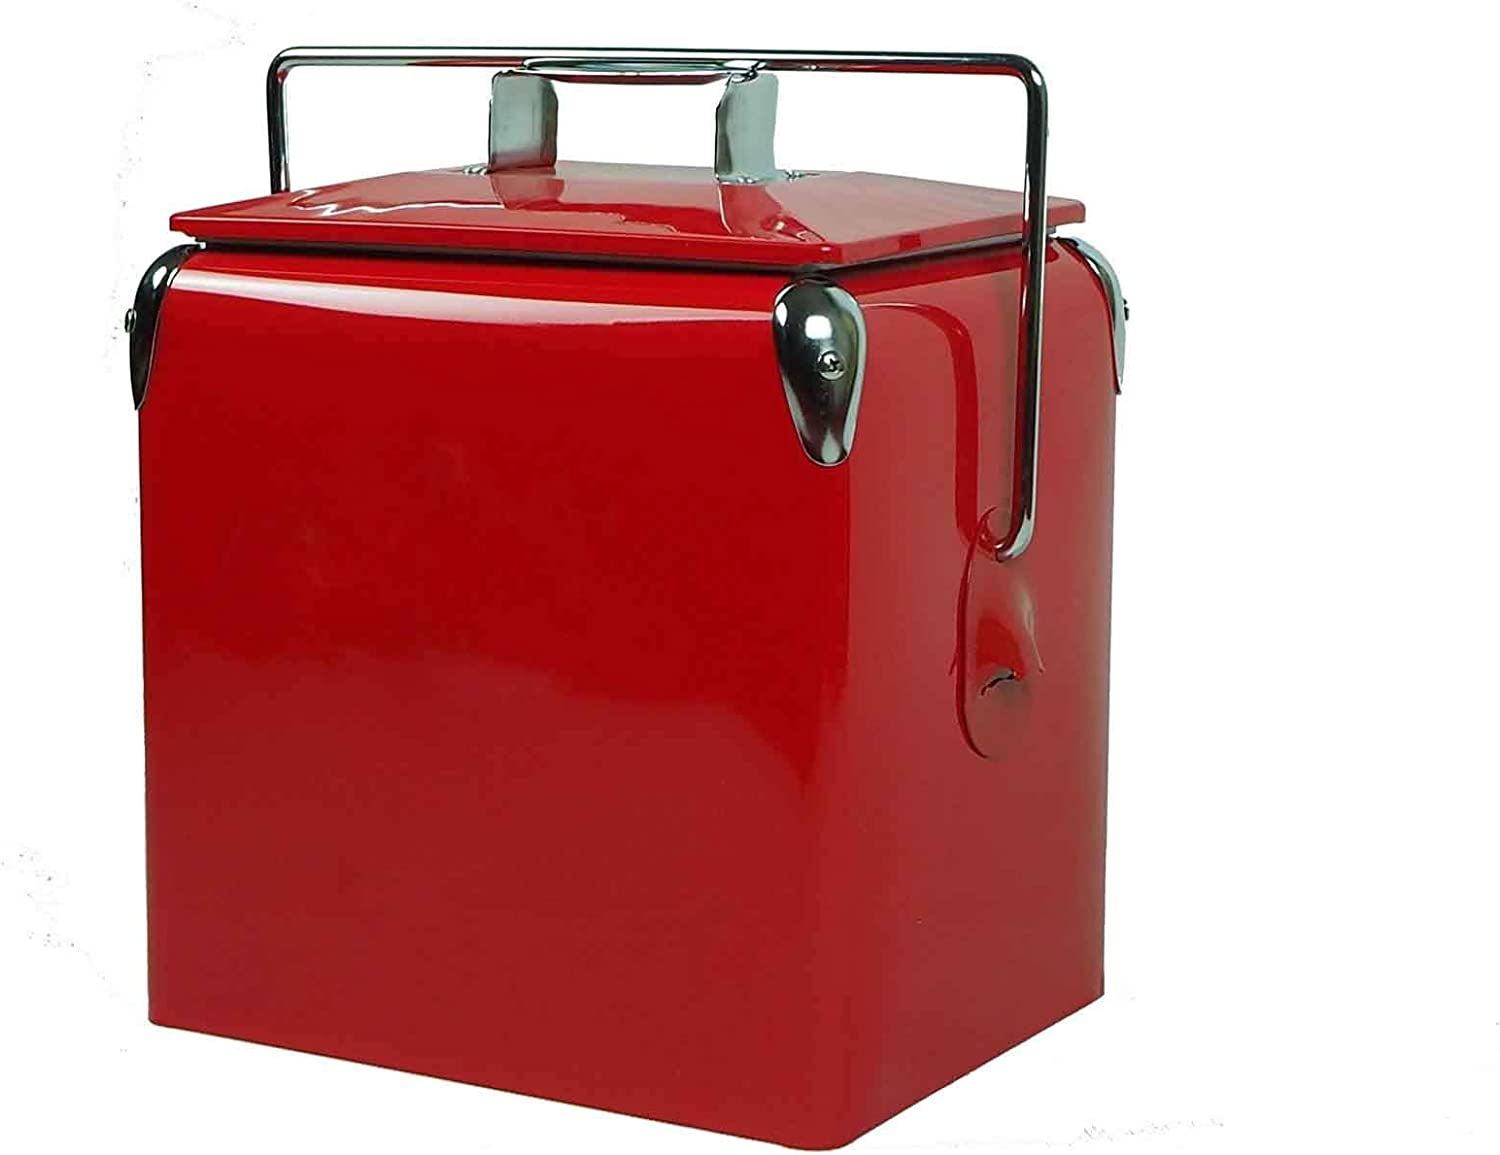 Portable Cooler 13L Capacity Keeps Ice up to 7 Days Ice Chest Ideal Heavy Duty Coolers for Camping, Hiking, Picnic, BBQs, Fishing, Traveling, Tailgating Outdoor Activities, Red